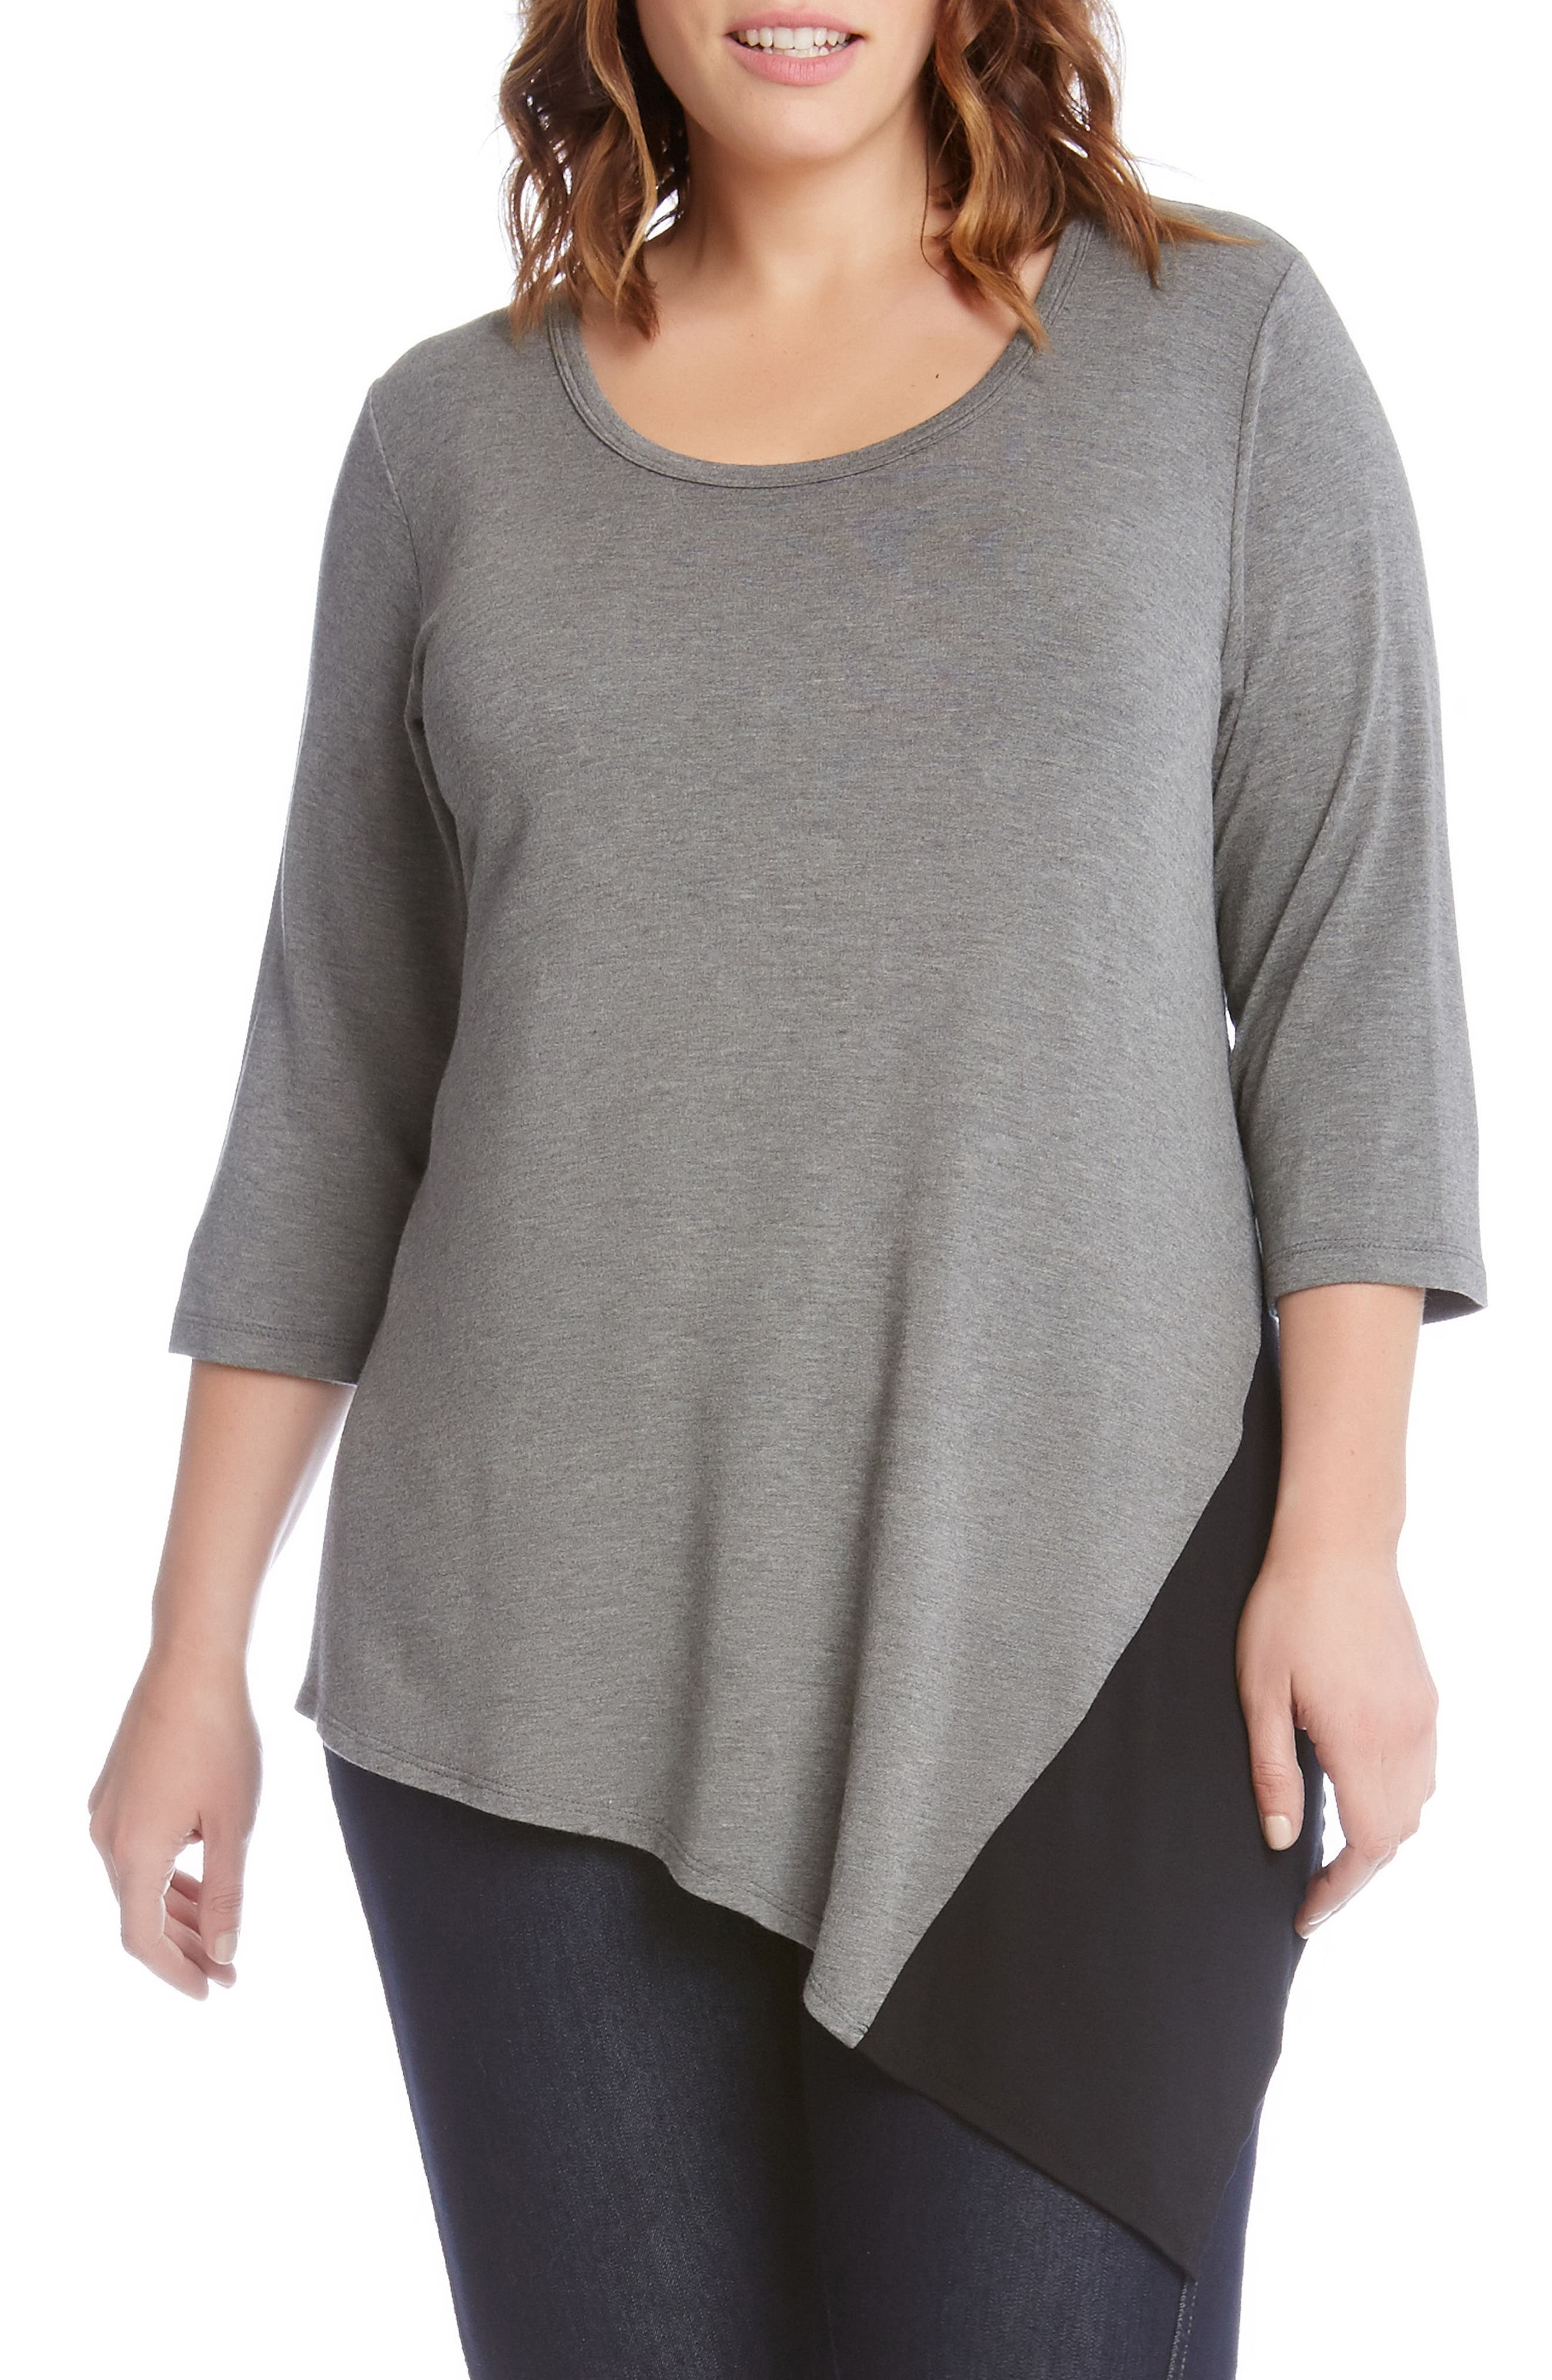 Colorblock Angle Top,                         Main,                         color, Grey With Black